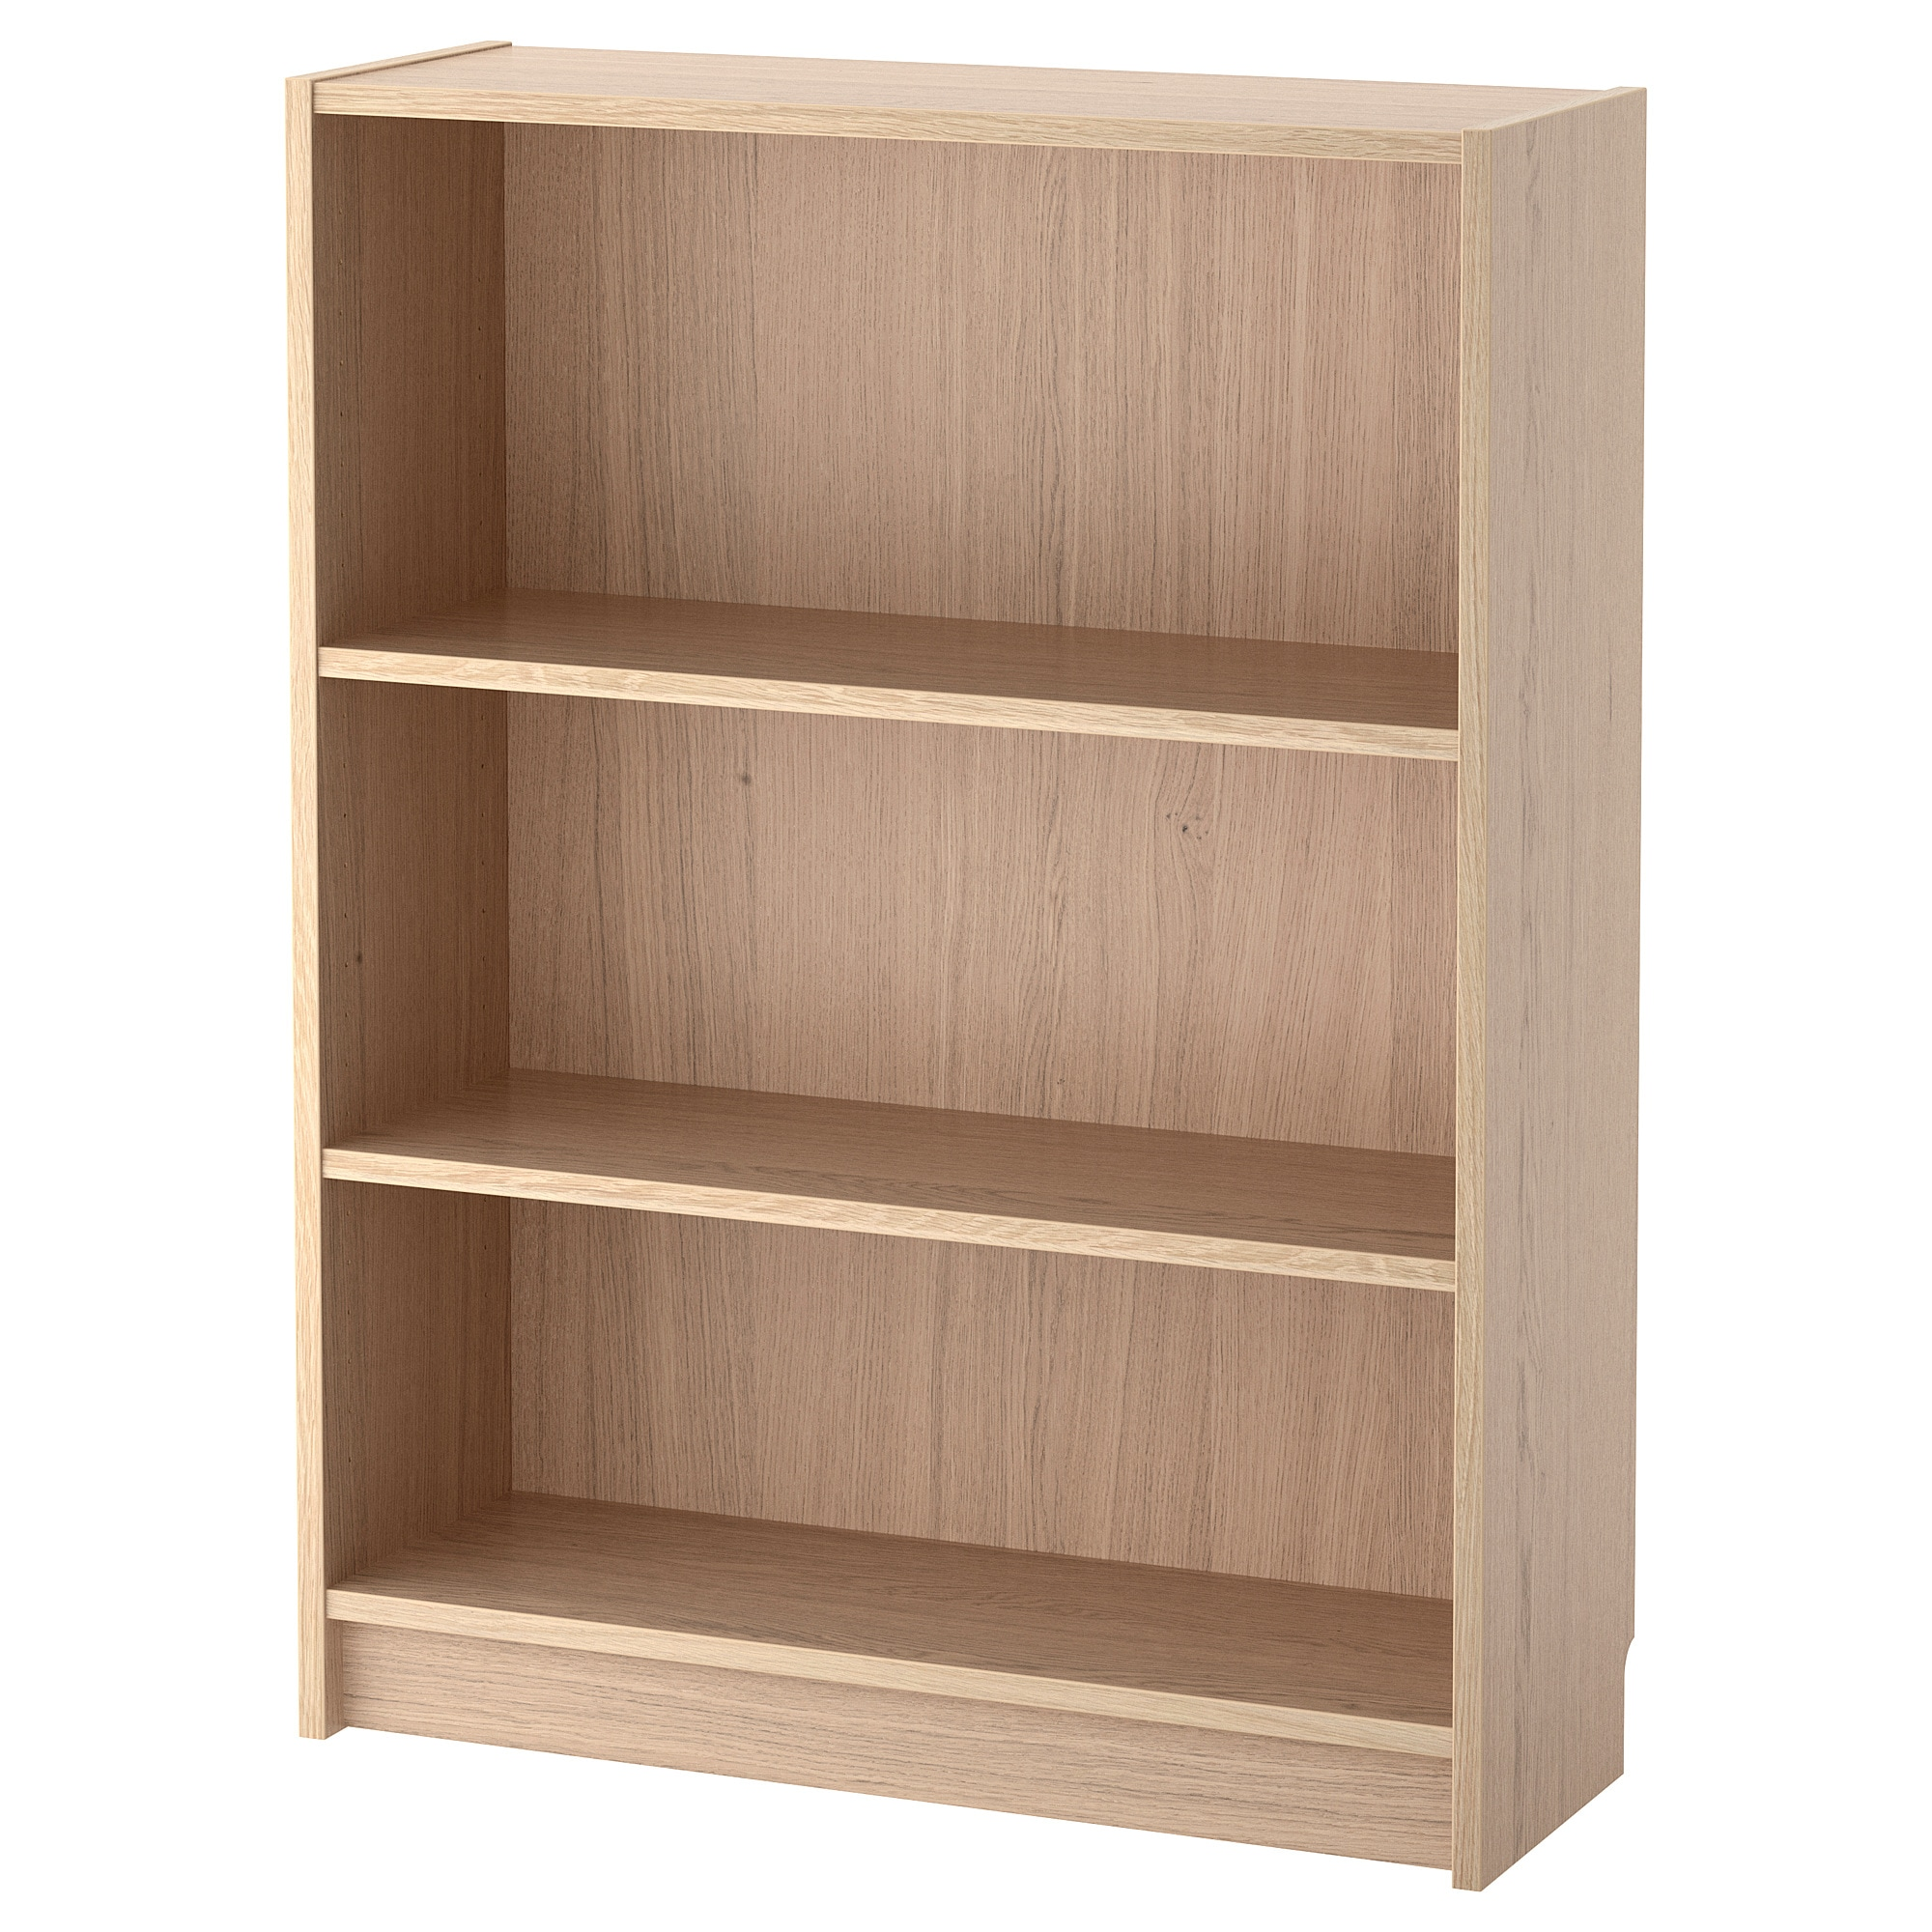 Billy White Stained Oak Veneer Bookcase 80x28x106 Cm Ikea Billy Bucherregal Bucherregal Bucherschrank